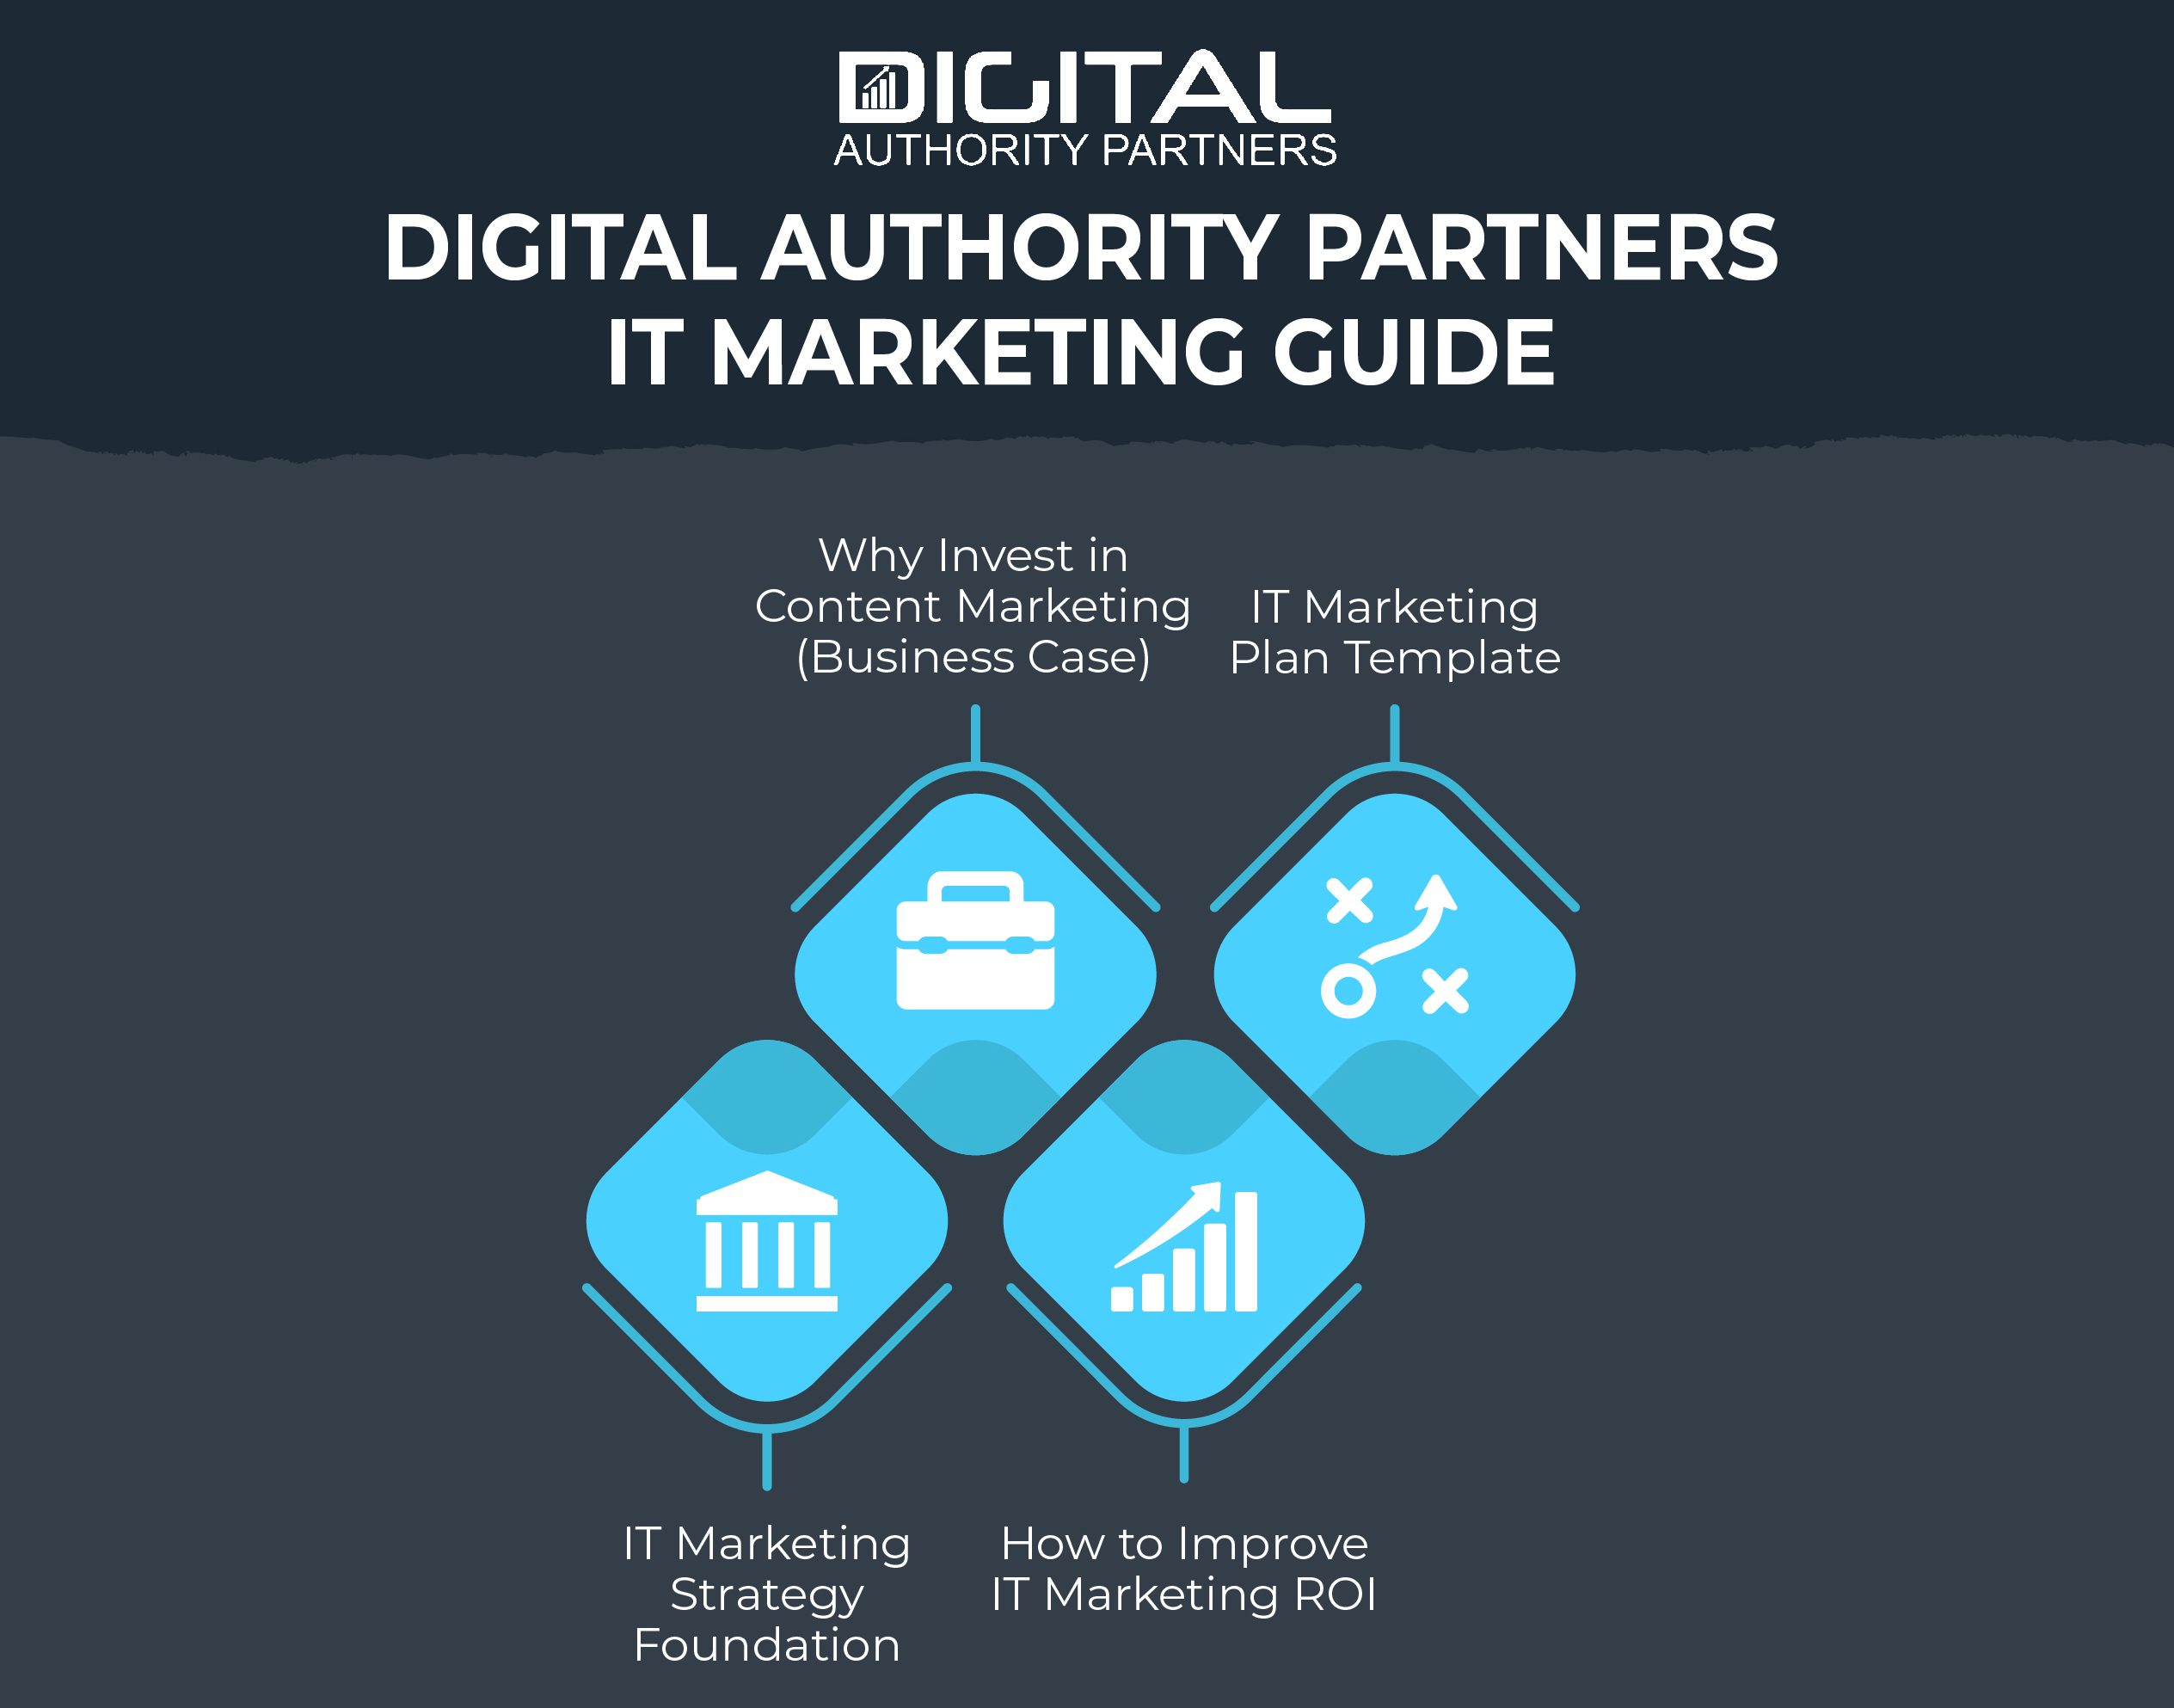 Digital Authority Partners - IT marketing guide covering business case for content marketing, IT marketing plan template, strategy, and how to improve ROI